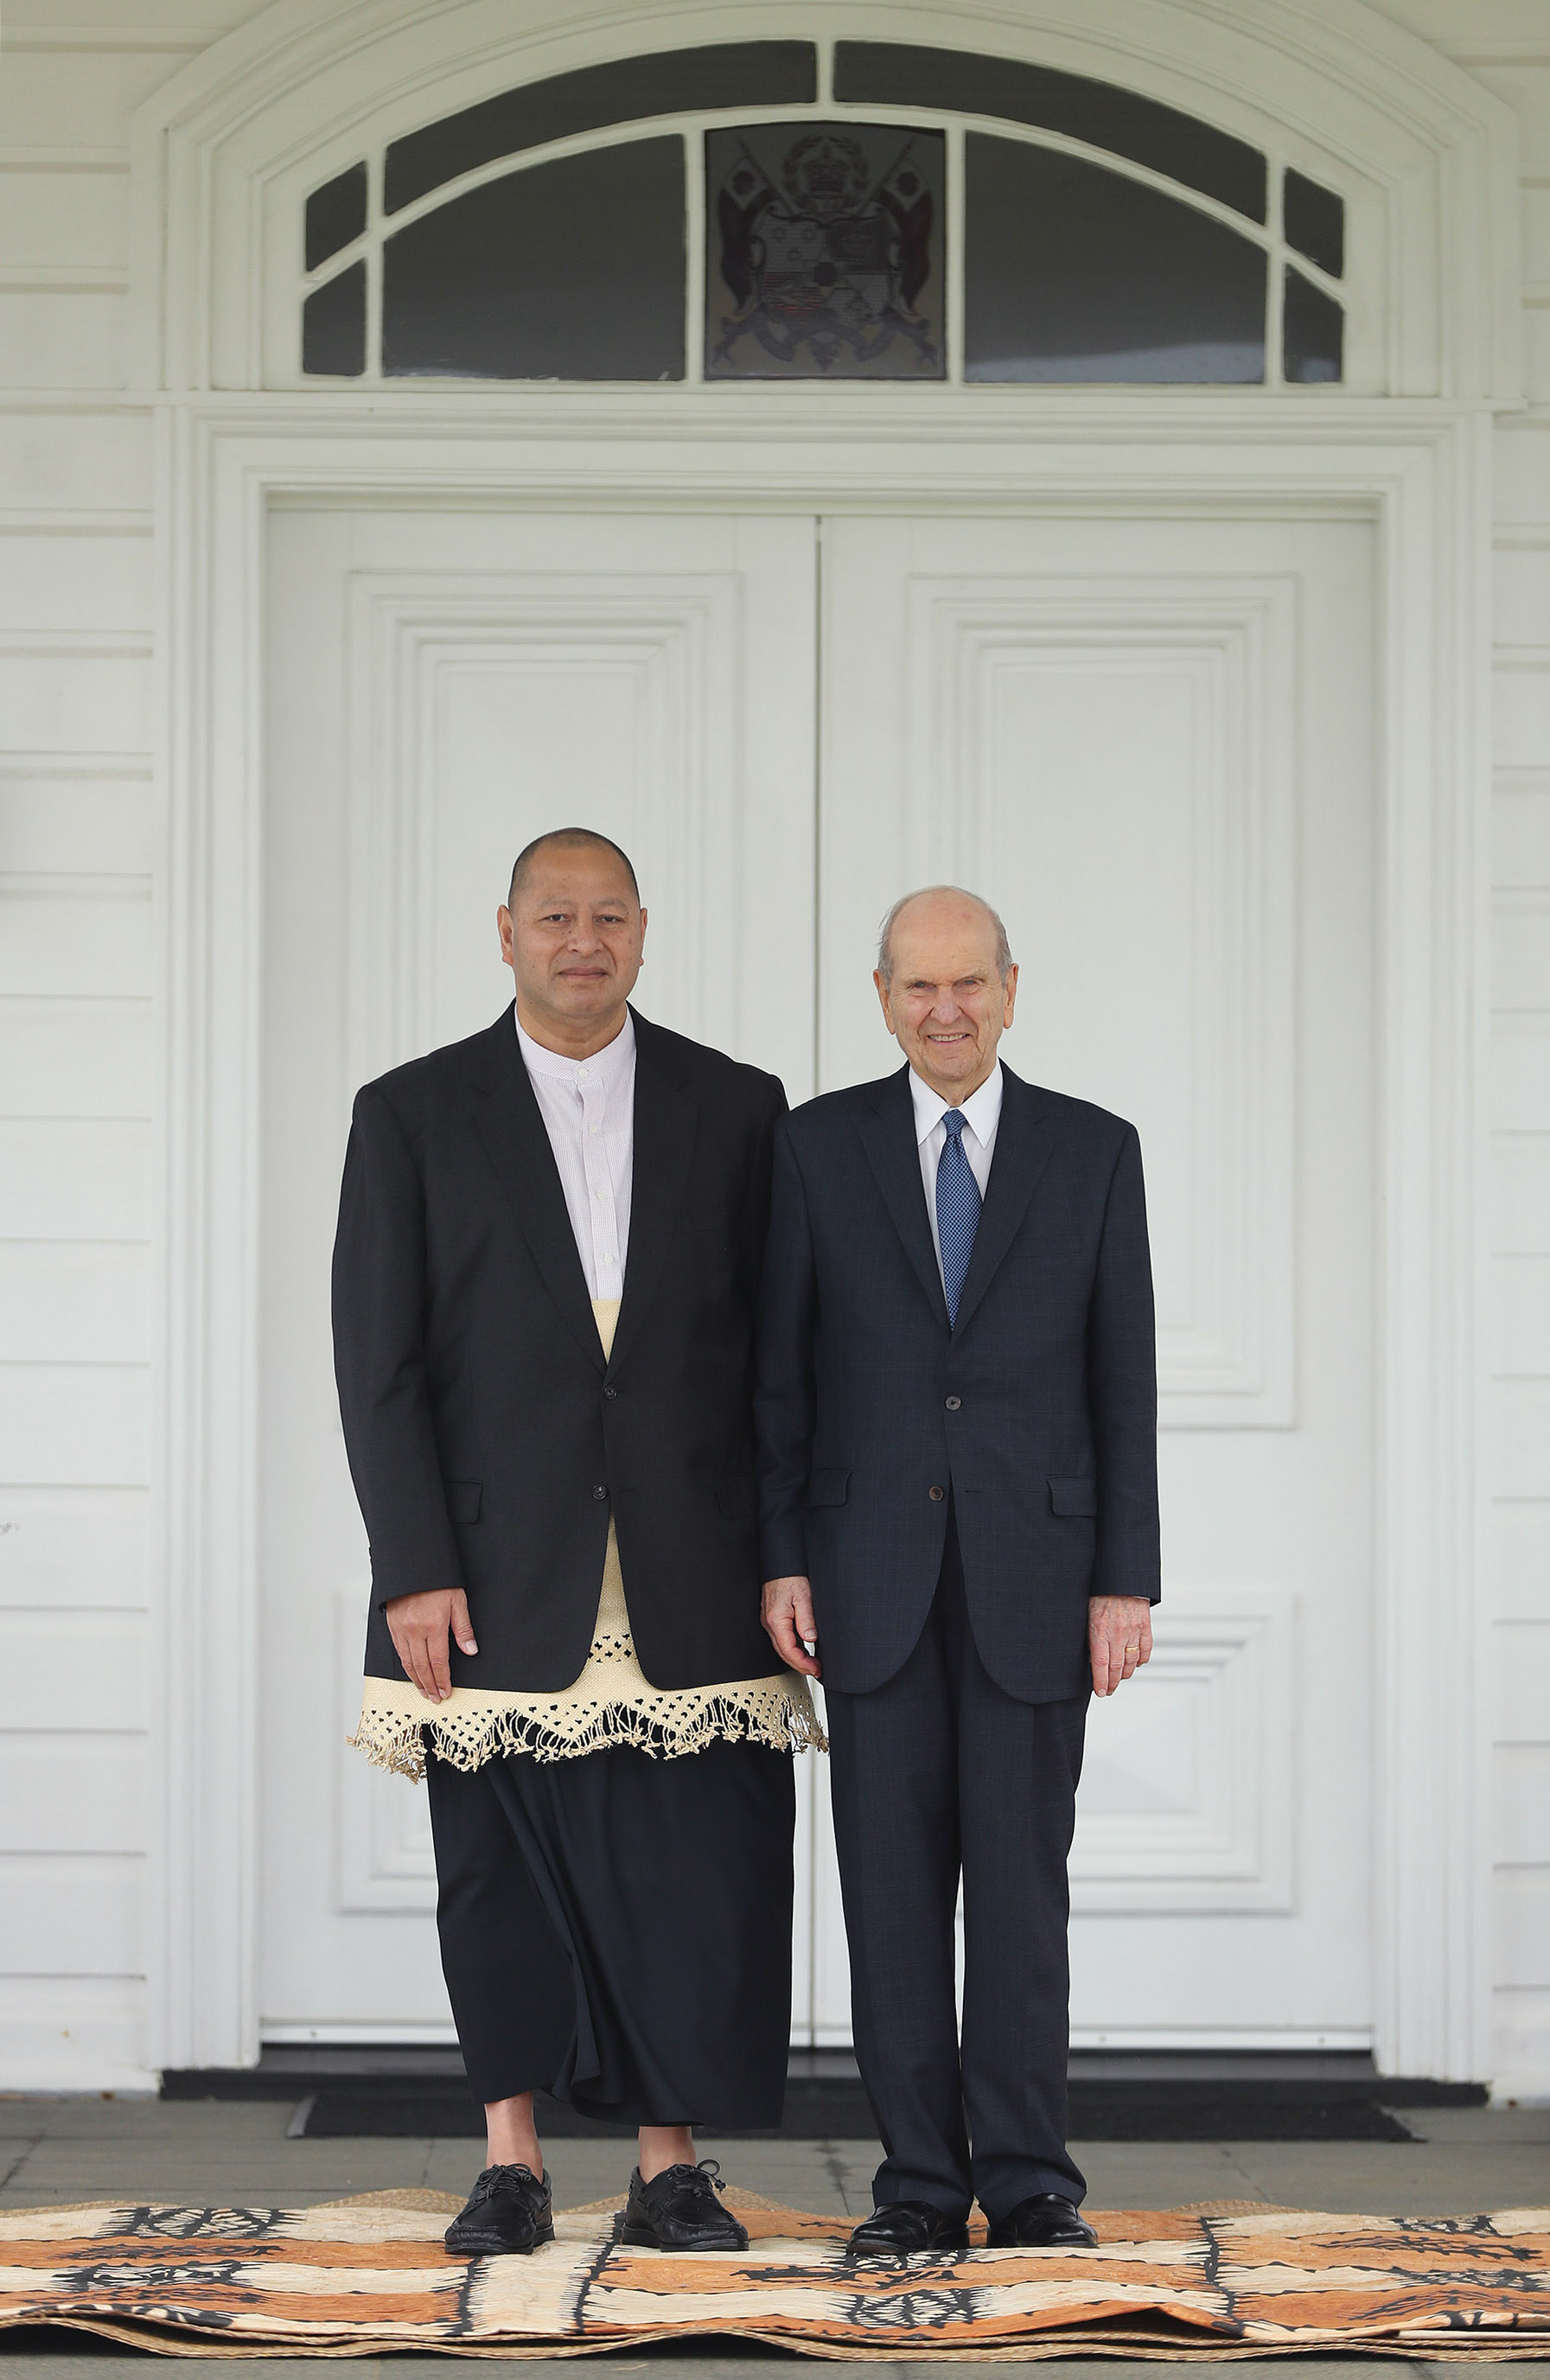 President Russell M. Nelson of The Church of Jesus Christ of Latter-day Saints poses with 'Aho'eitu Tupou VI, King of Tonga, at the Royal Palace in Tonga on May 23, 2019.